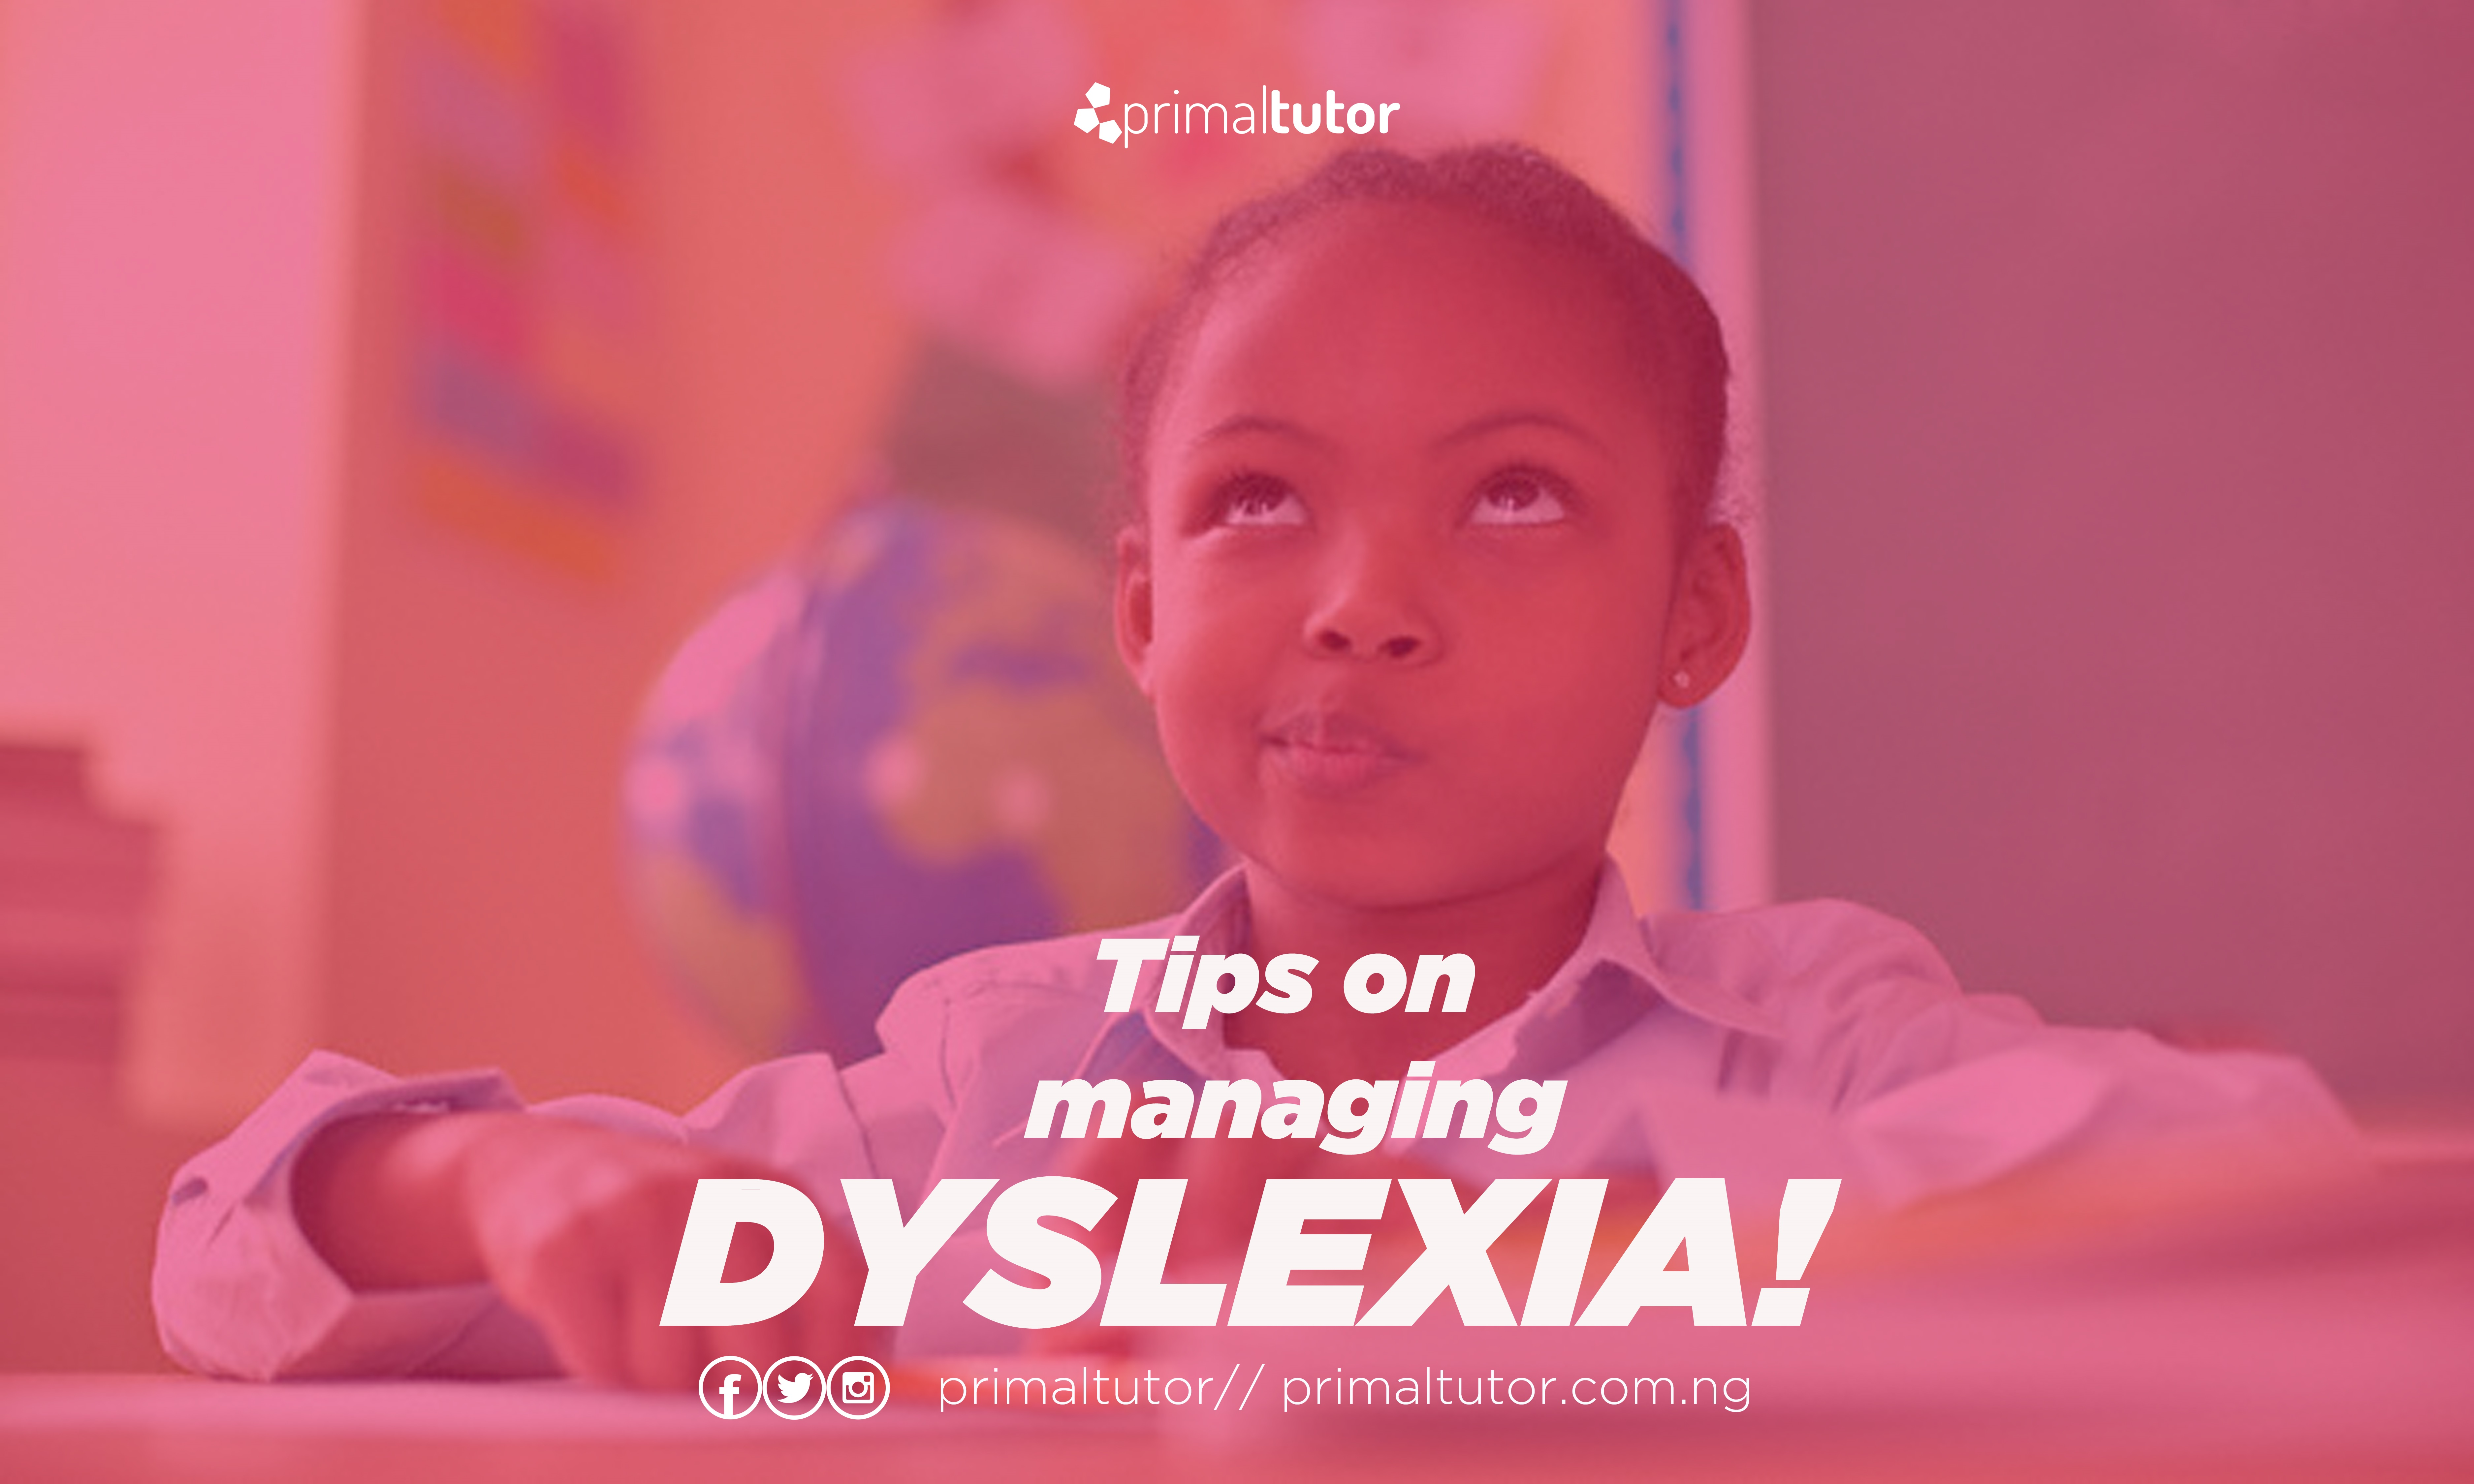 TIPS FOR MANAGING DYSLEXIA